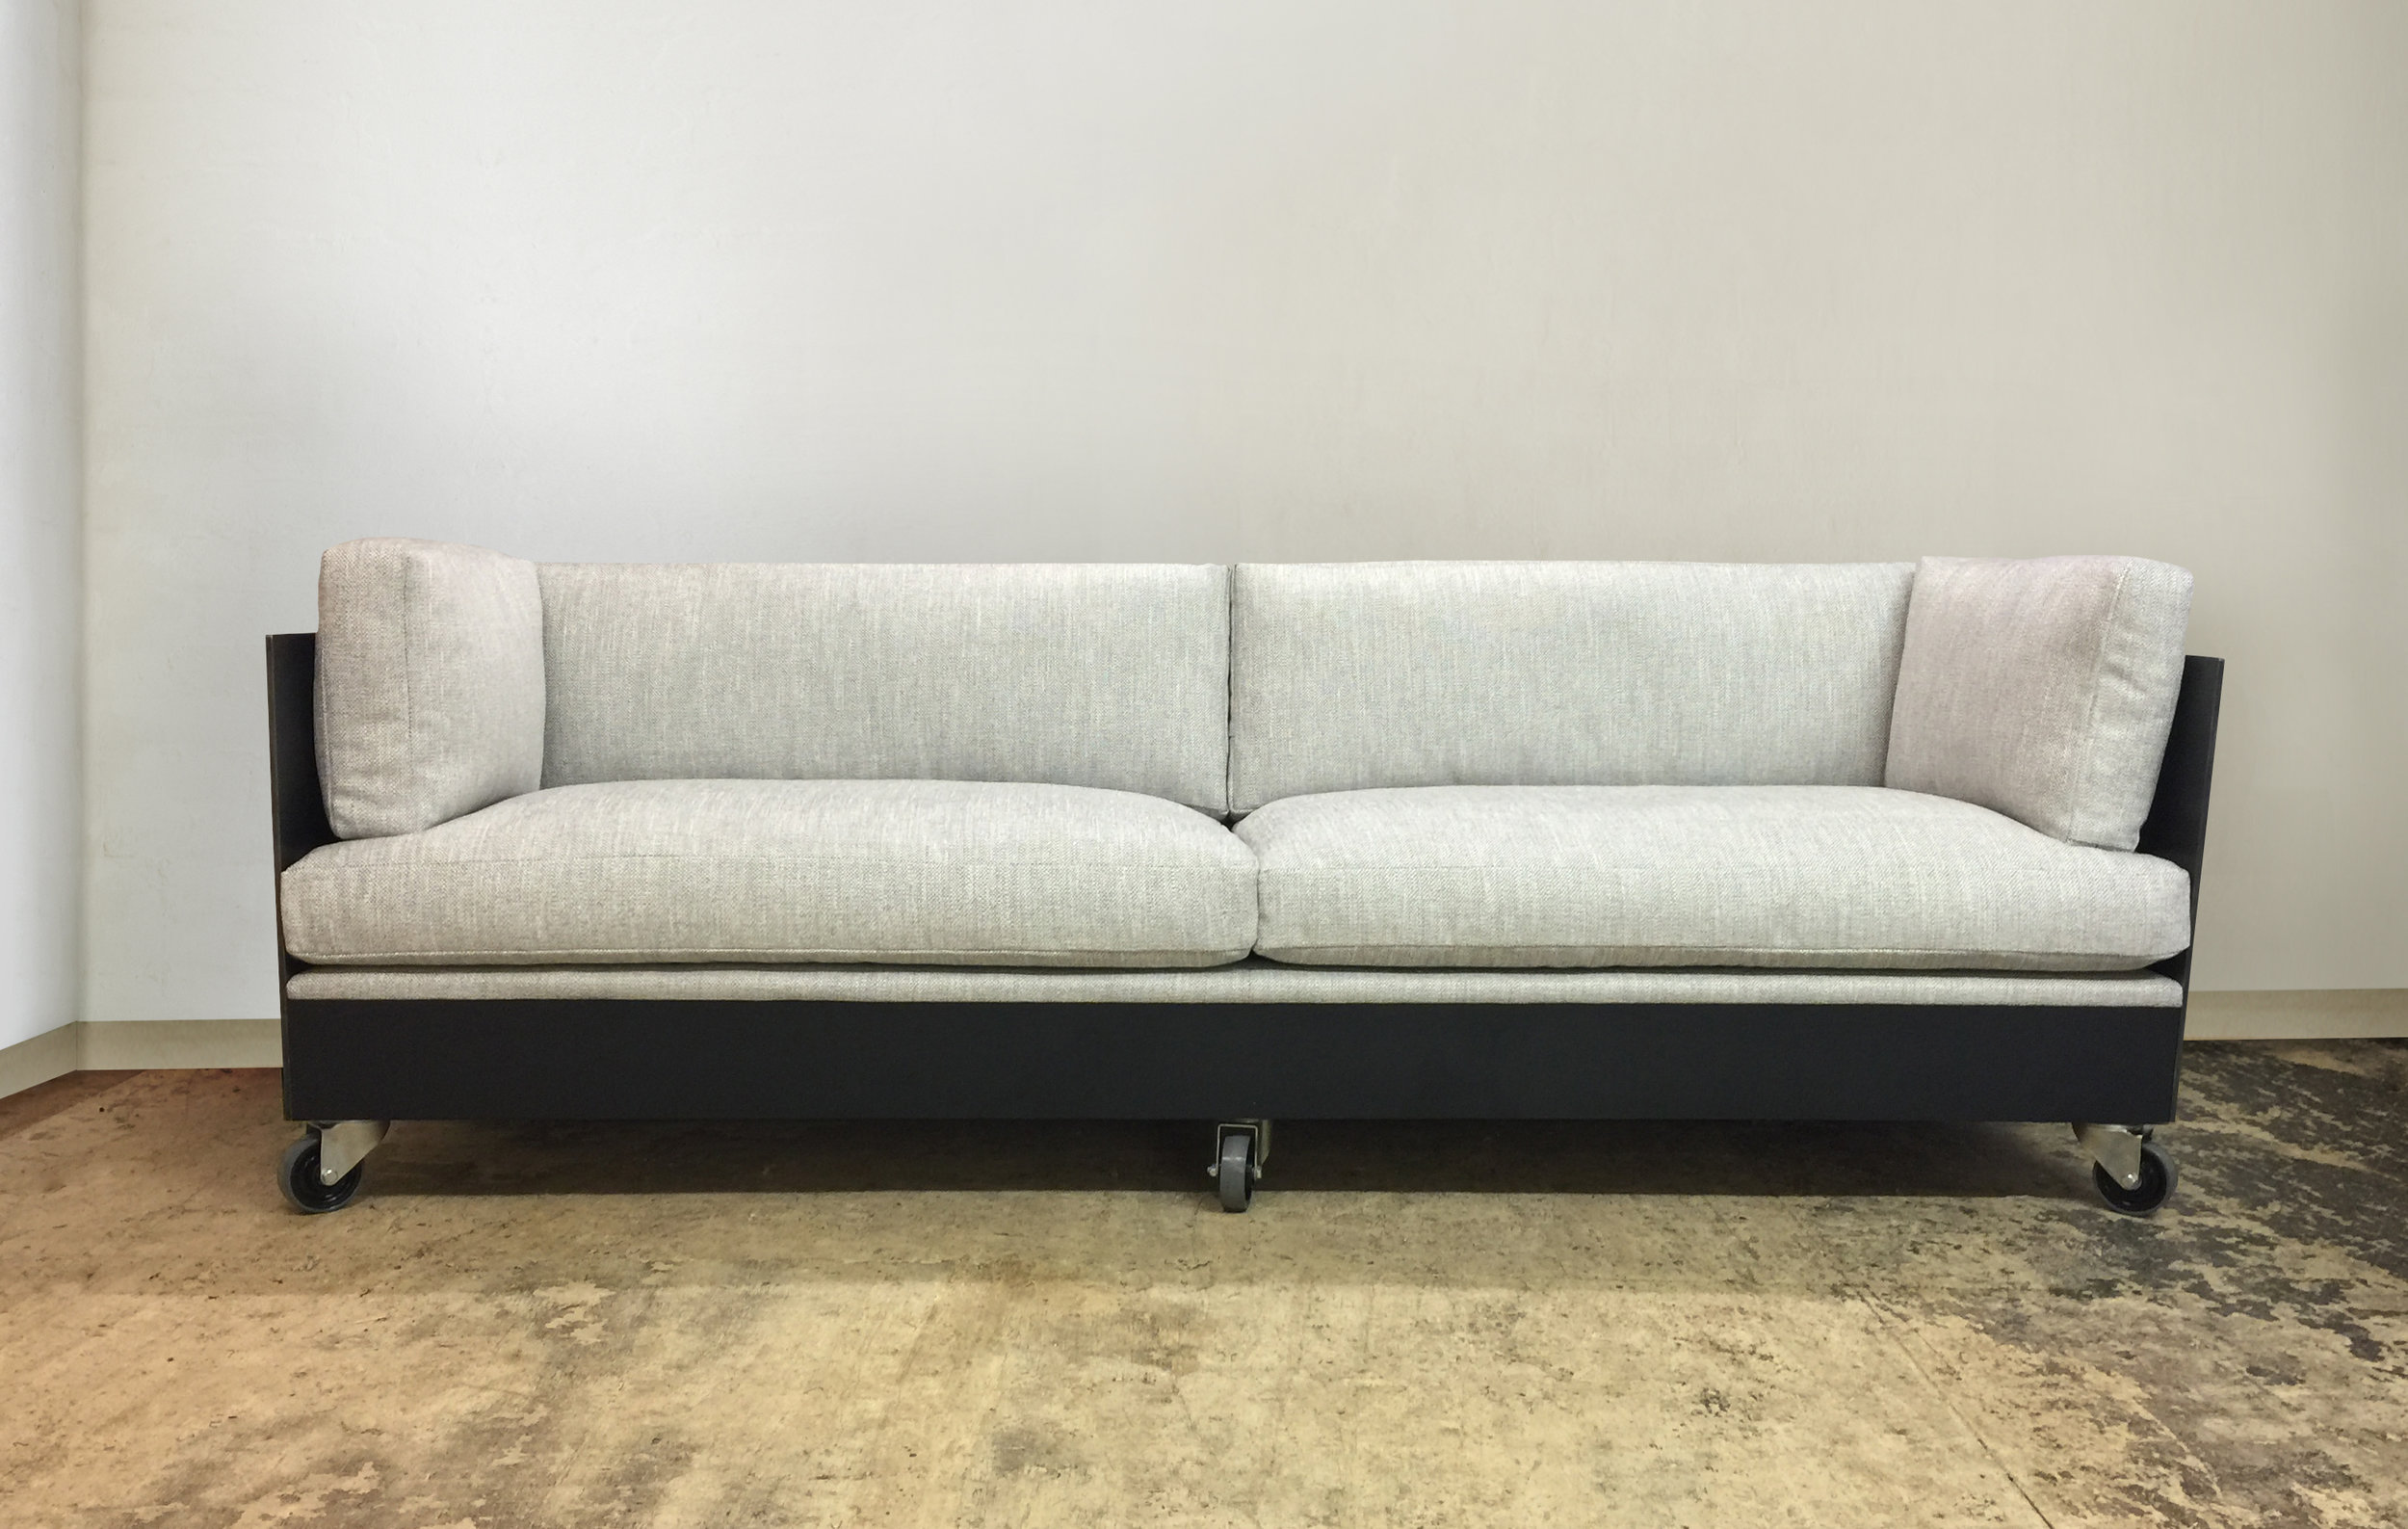 Steel sofa completed